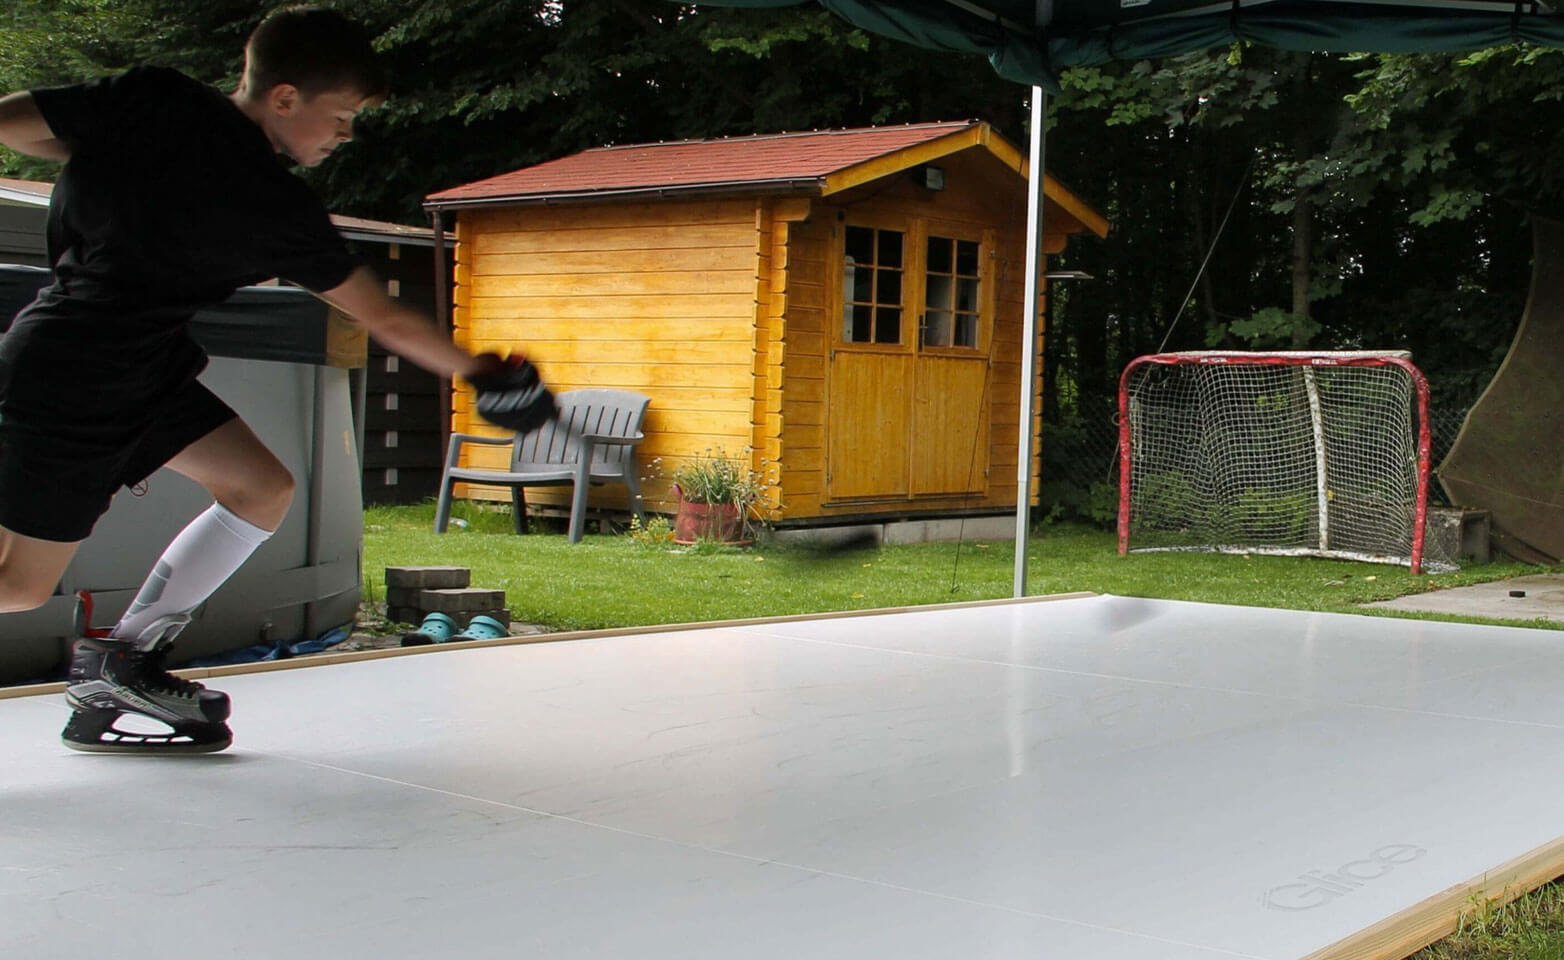 Swiss kid practicing on synthetic ice pad